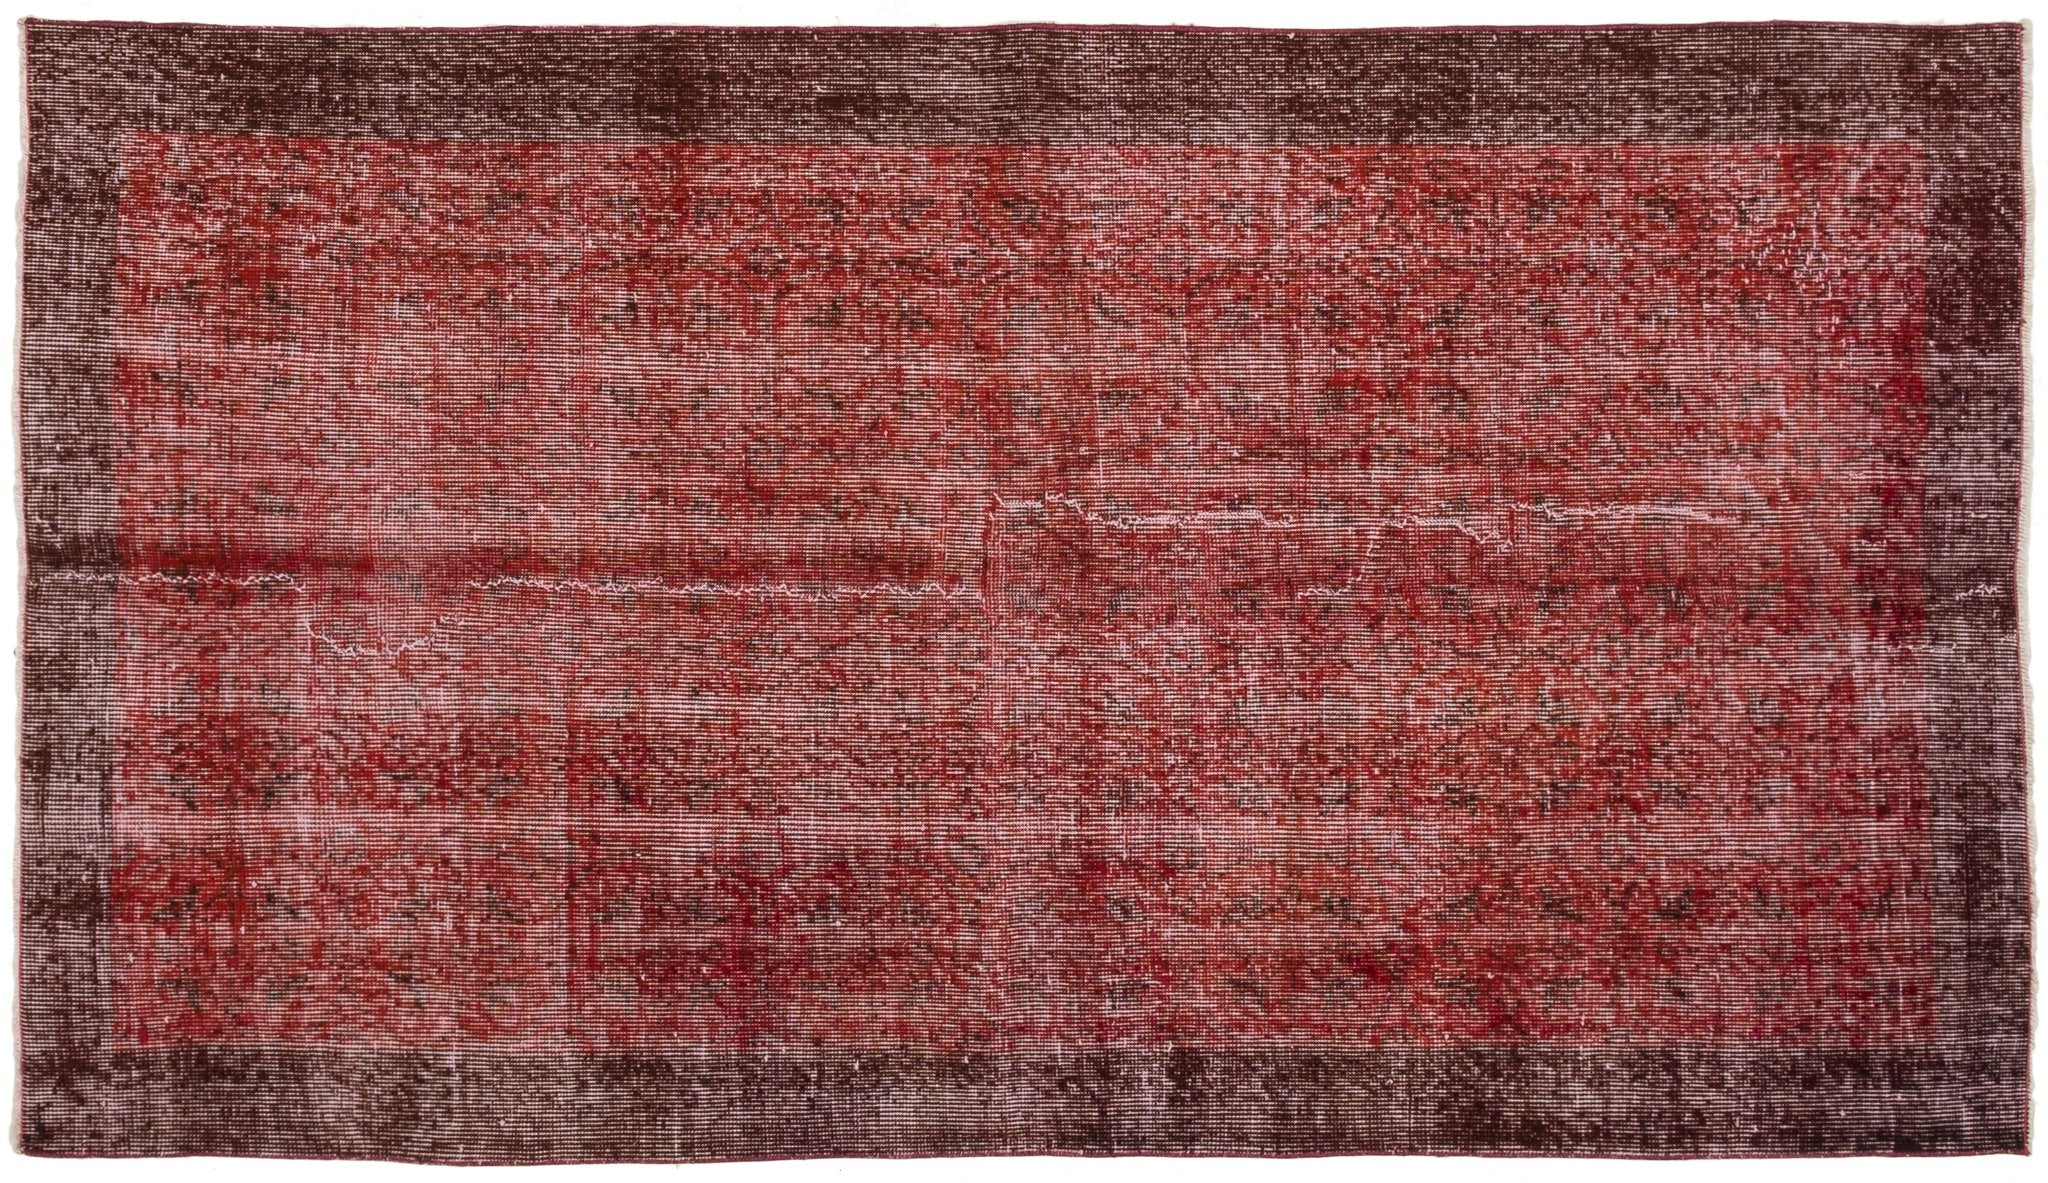 Vintage Overdyed Rug Pat